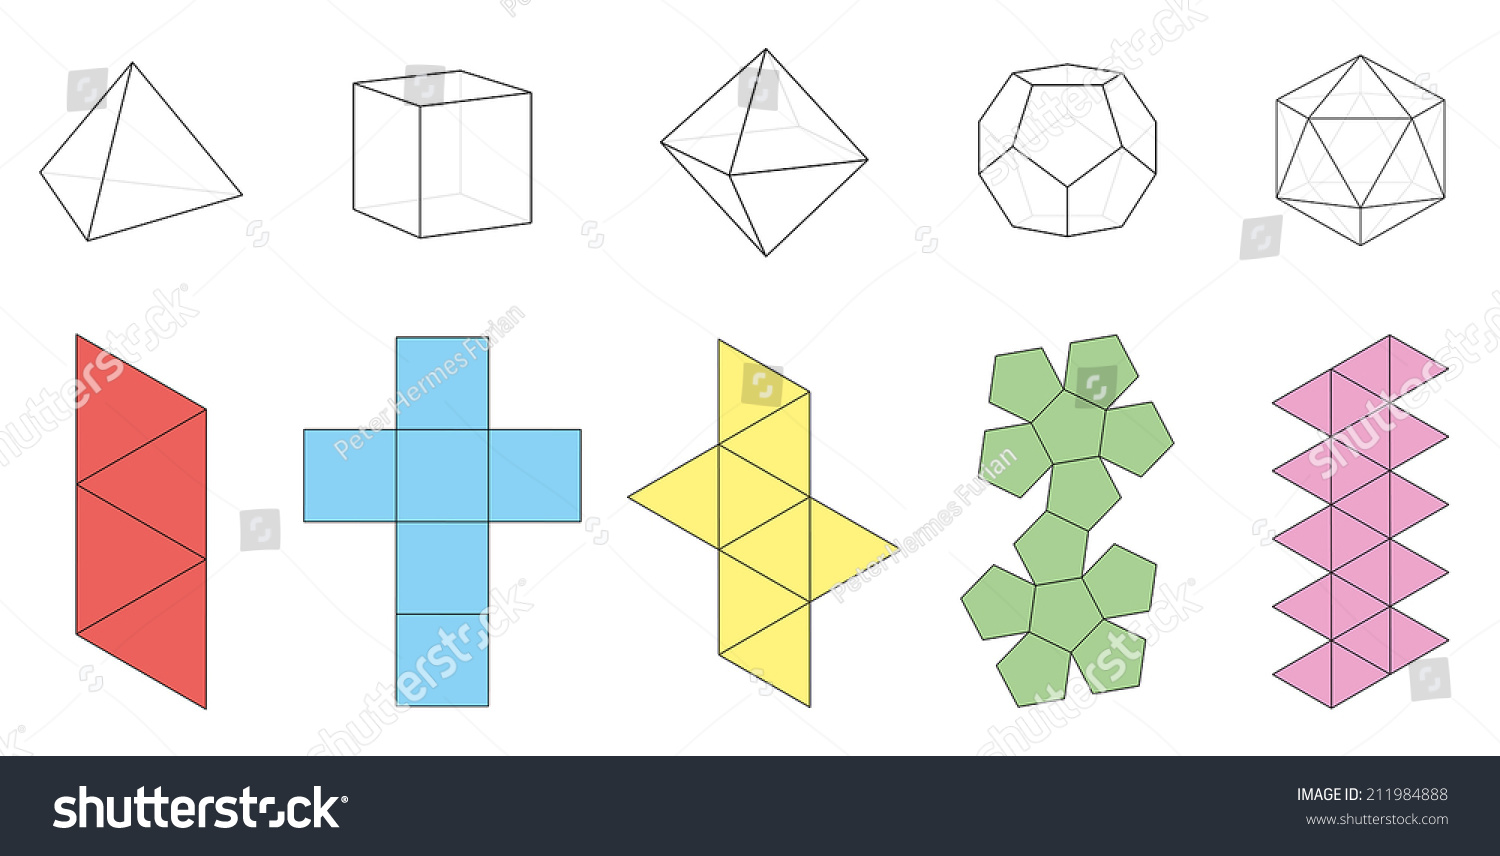 Solid Three Dimensional Shapes Pictures To Pin On